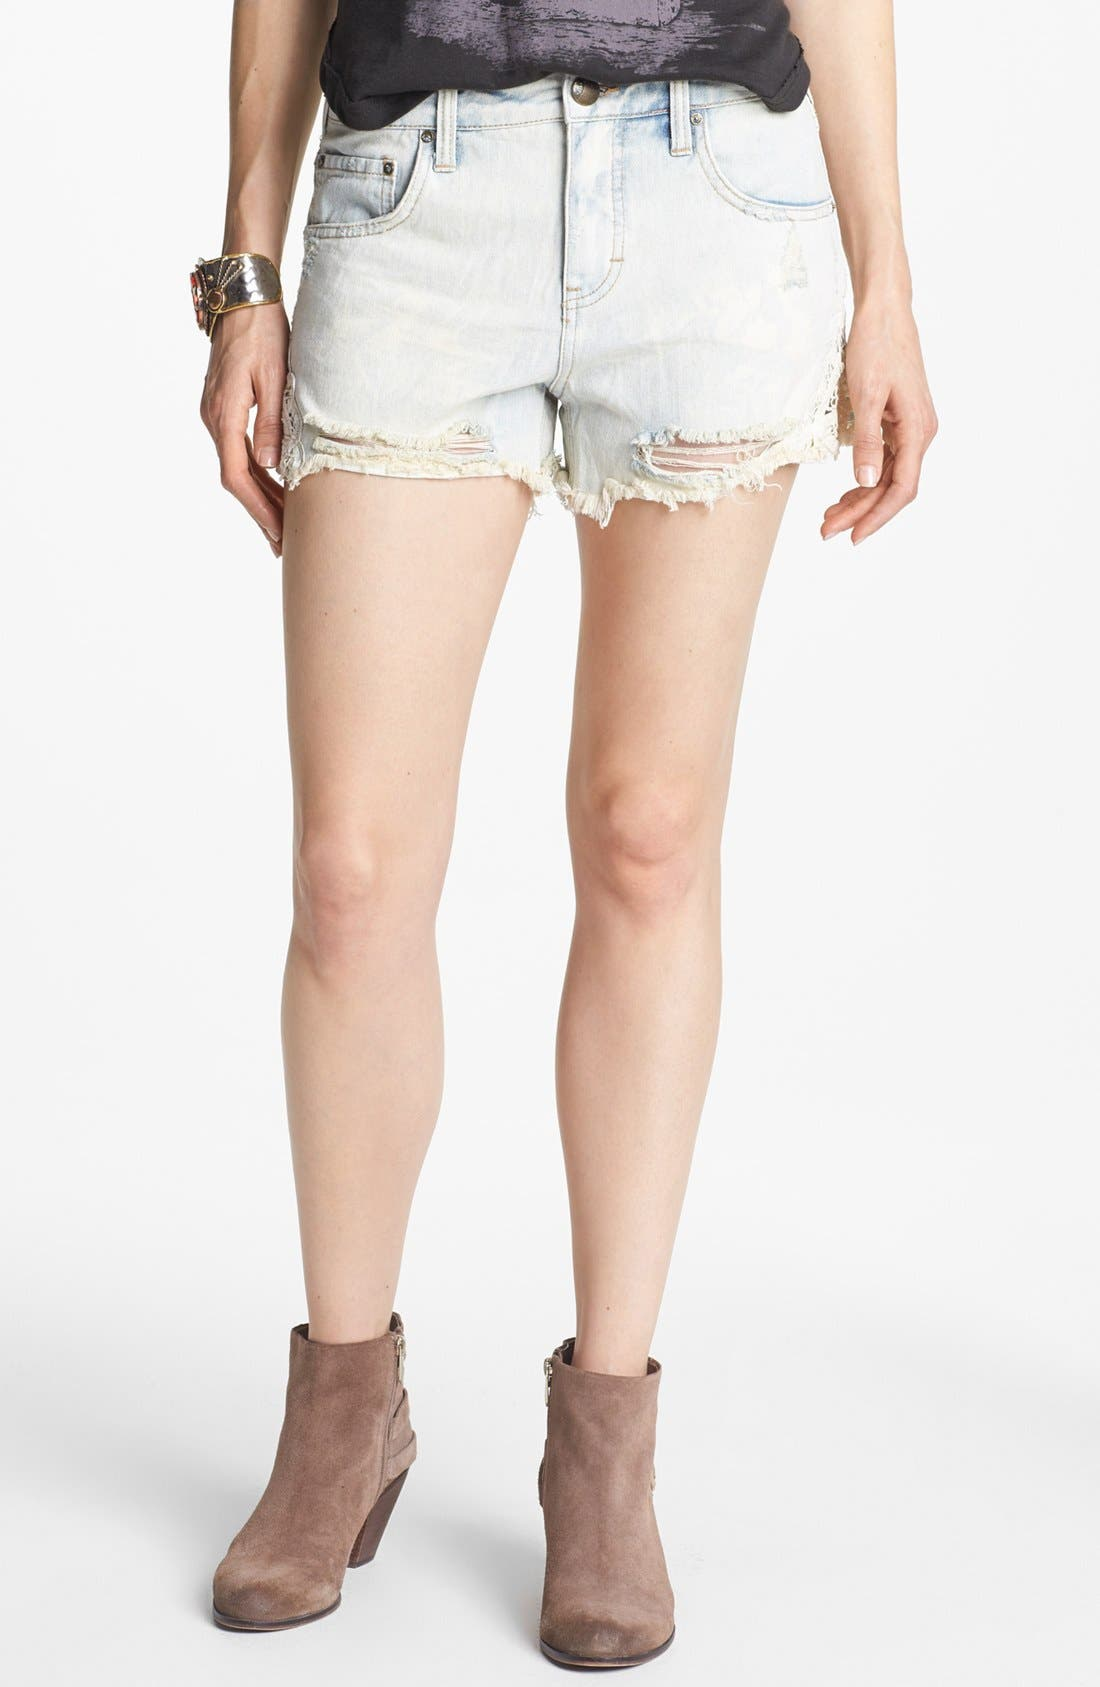 Alternate Image 1 Selected - Free People Crochet Trim Cutoff Denim Shorts (White Cloud)